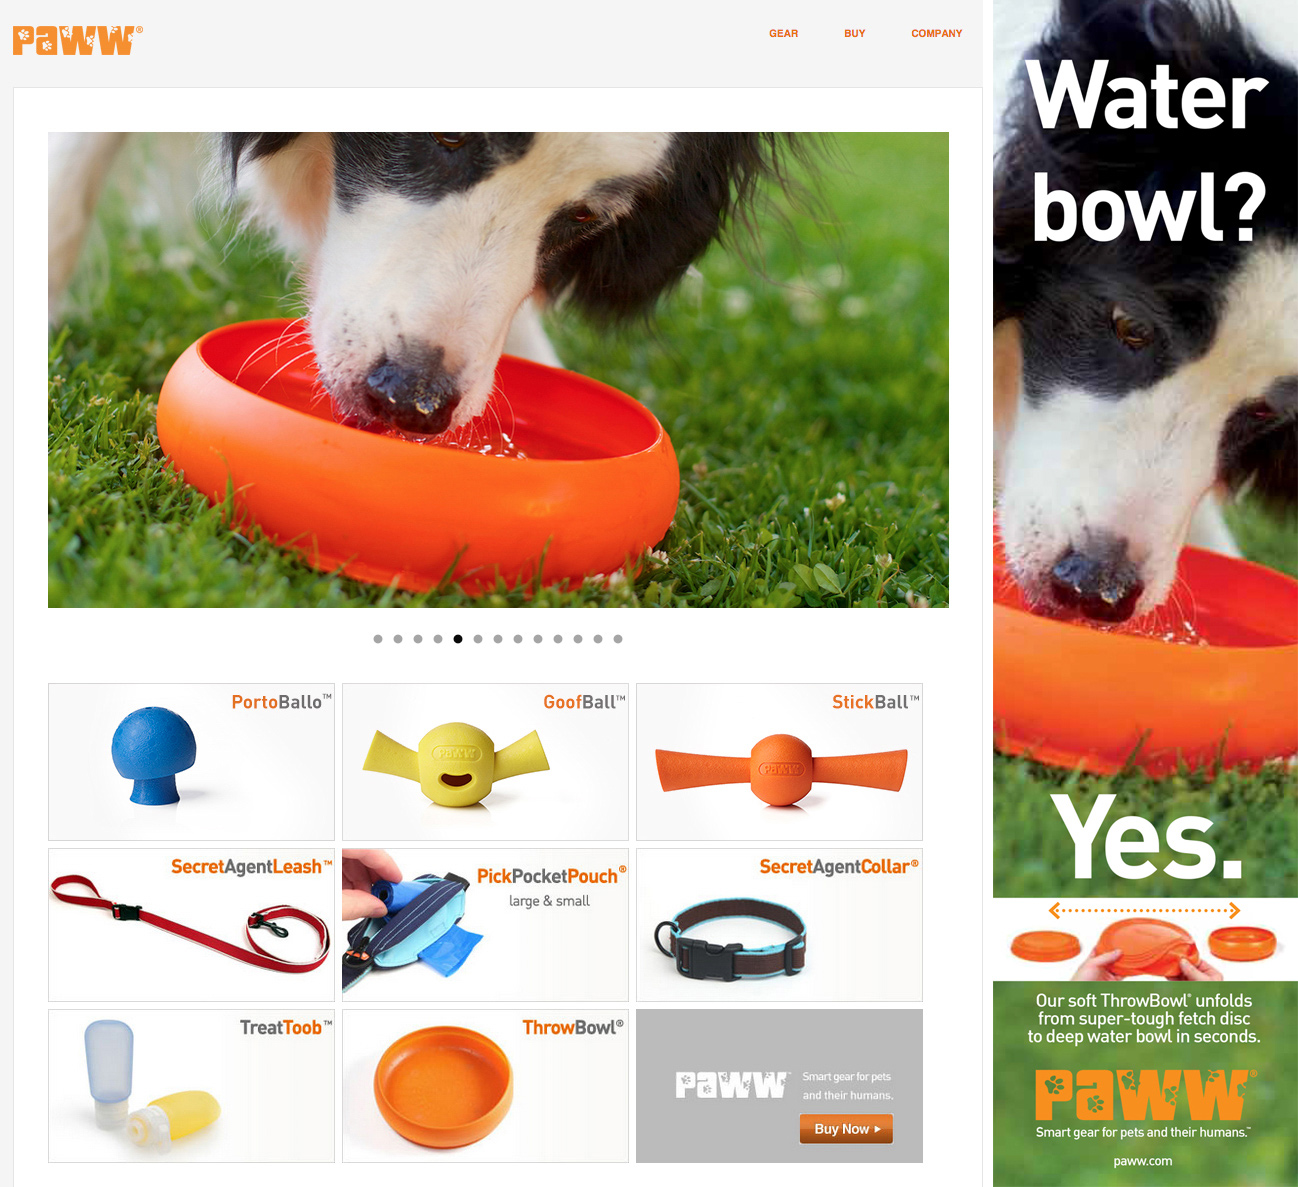 Commissioned Photography | PAWW Dog Bowl by Mark Rogers